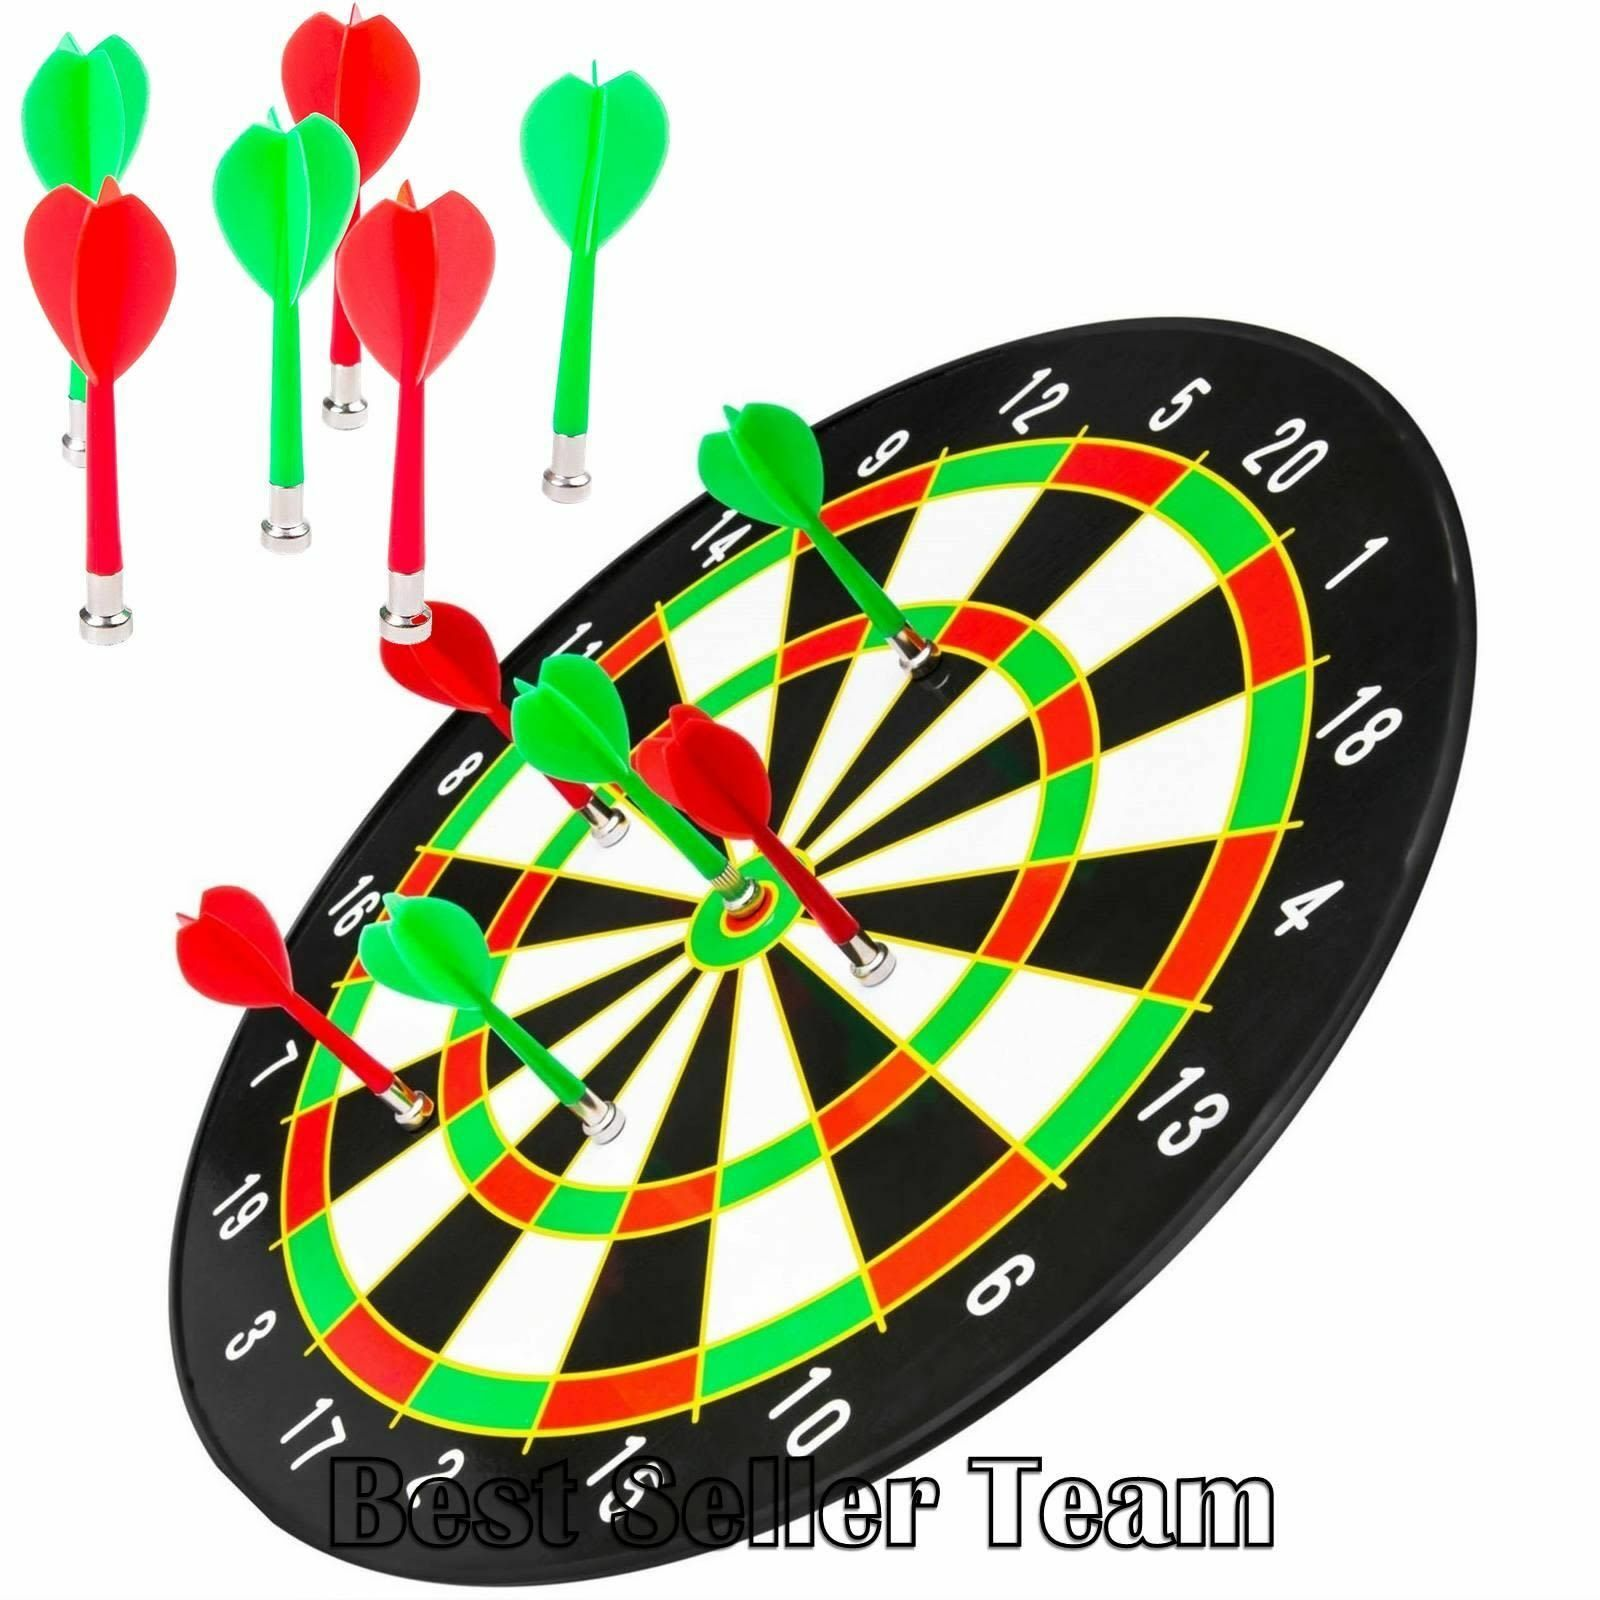 Magnetic Dart Set With 16 Inch Dartboard and 6 Darts & Equipment By Better Line